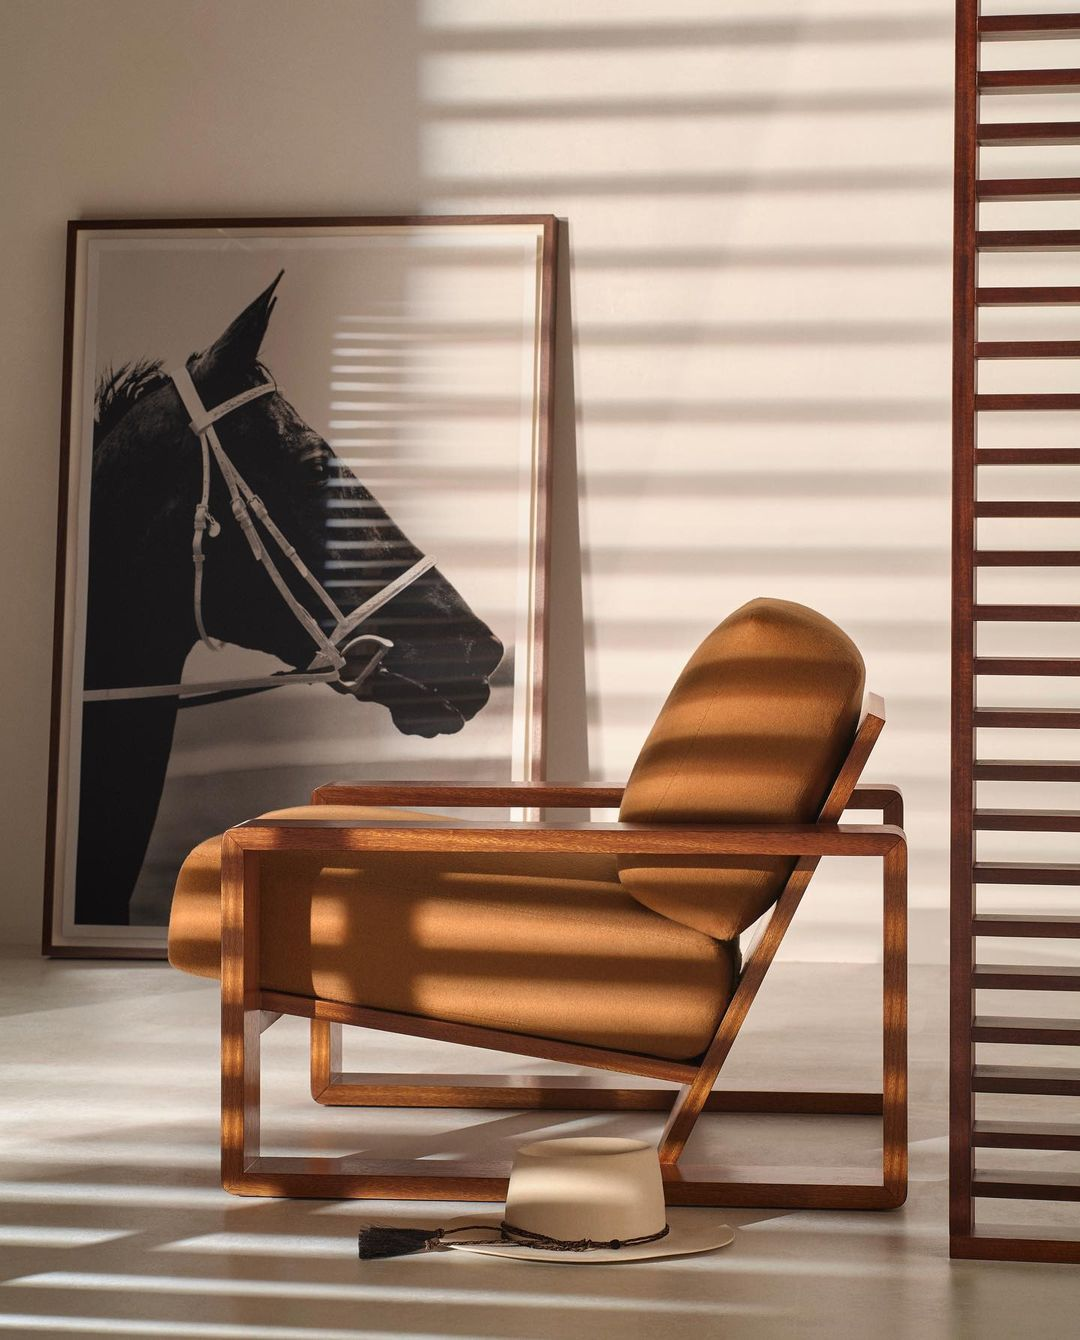 The RL Lounge Chair offers an architectural silhouette.